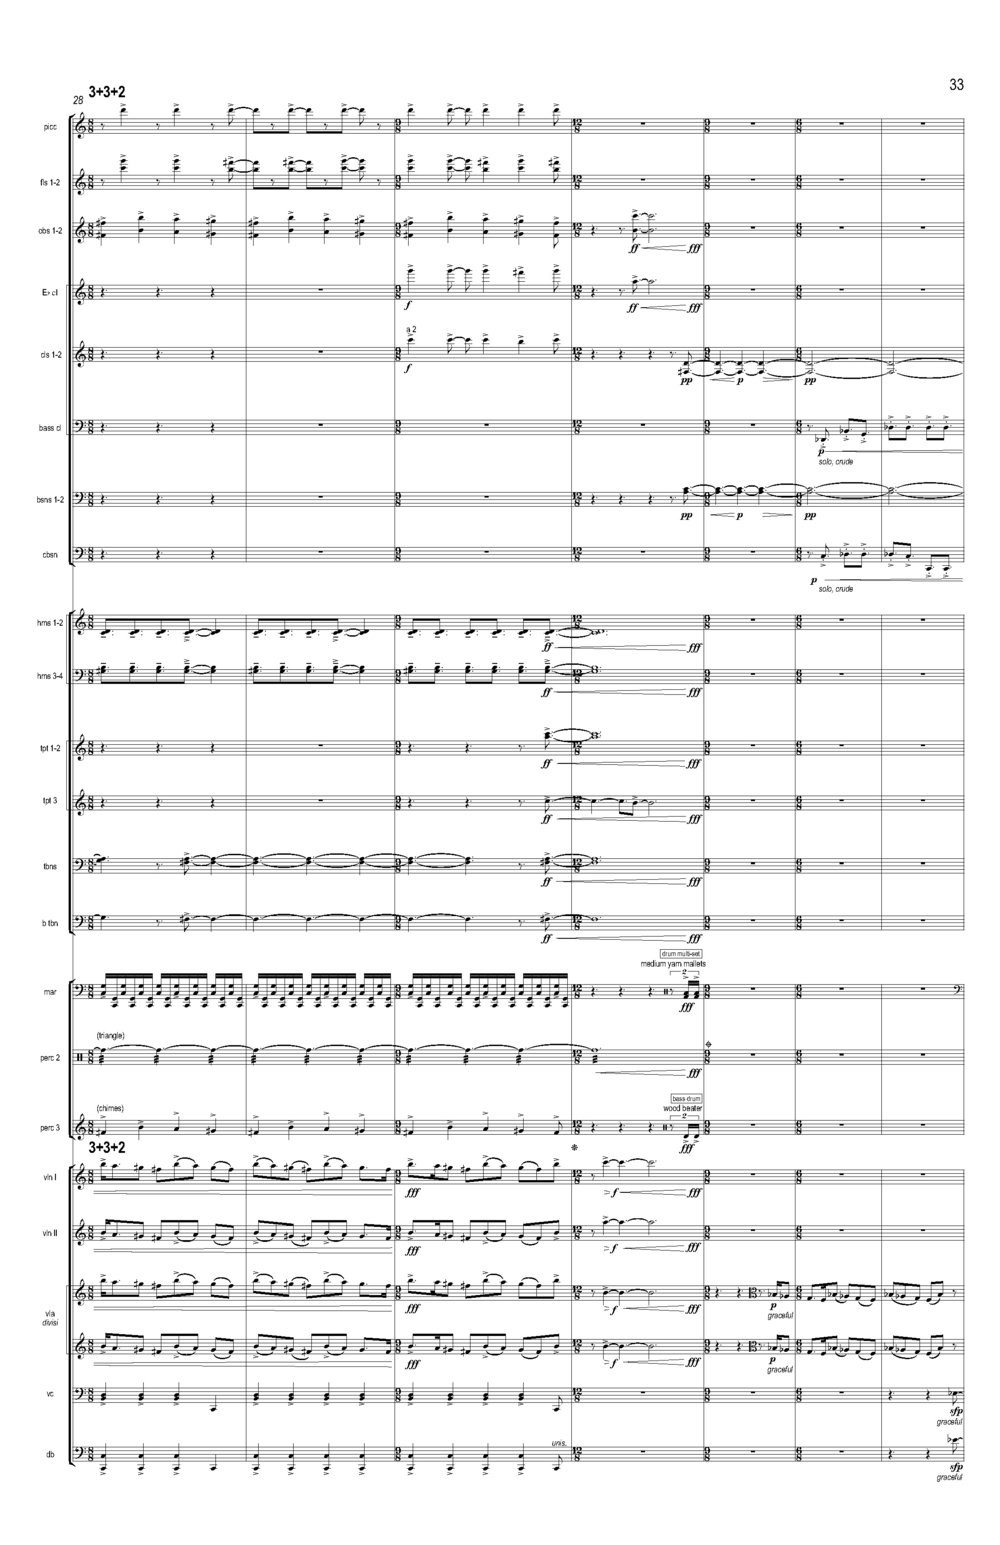 Ciach_Collective Uncommon REVISED_Full Score (Feb 2017)_Seite_39.jpg